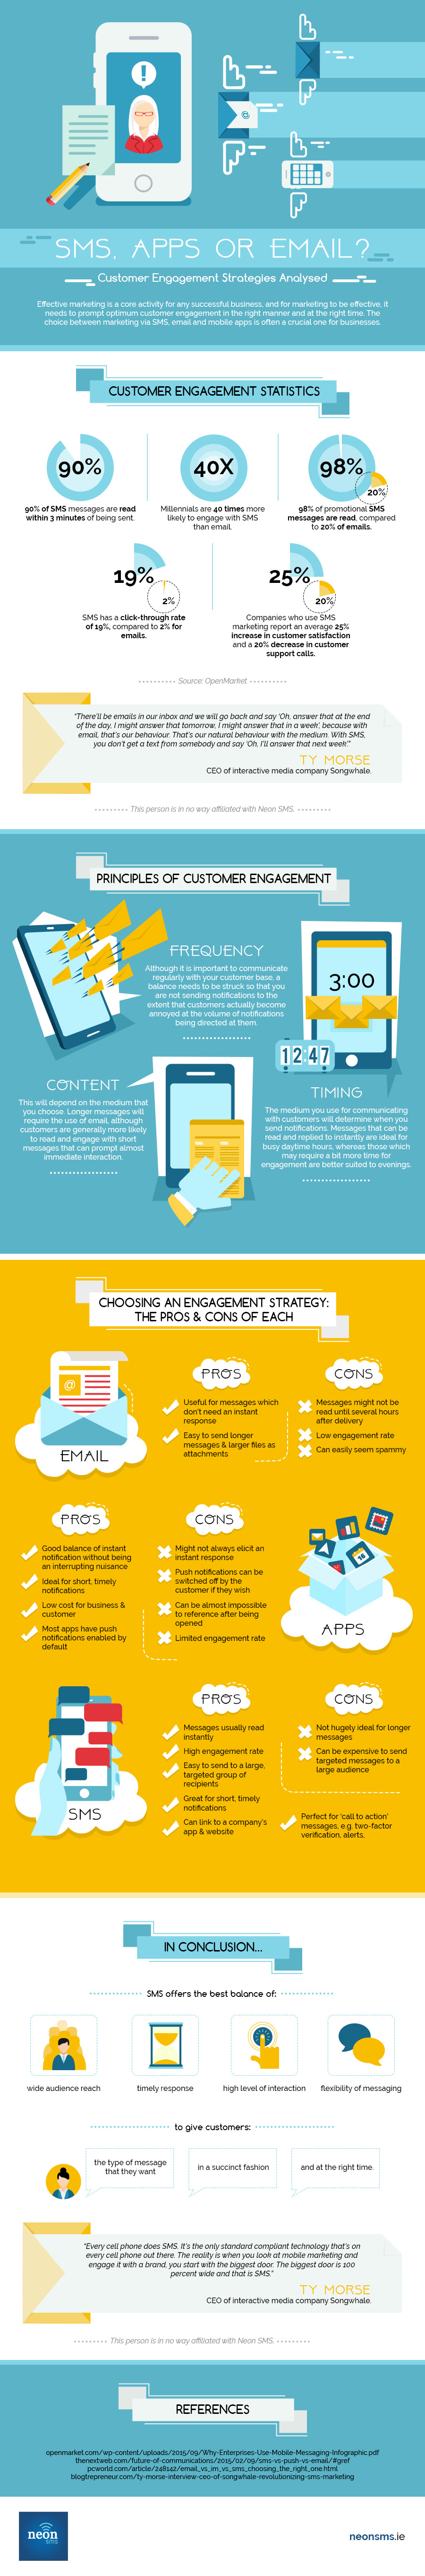 SMS, Apps or Email? Customer Engagement Strategies Analysed[Infographic]